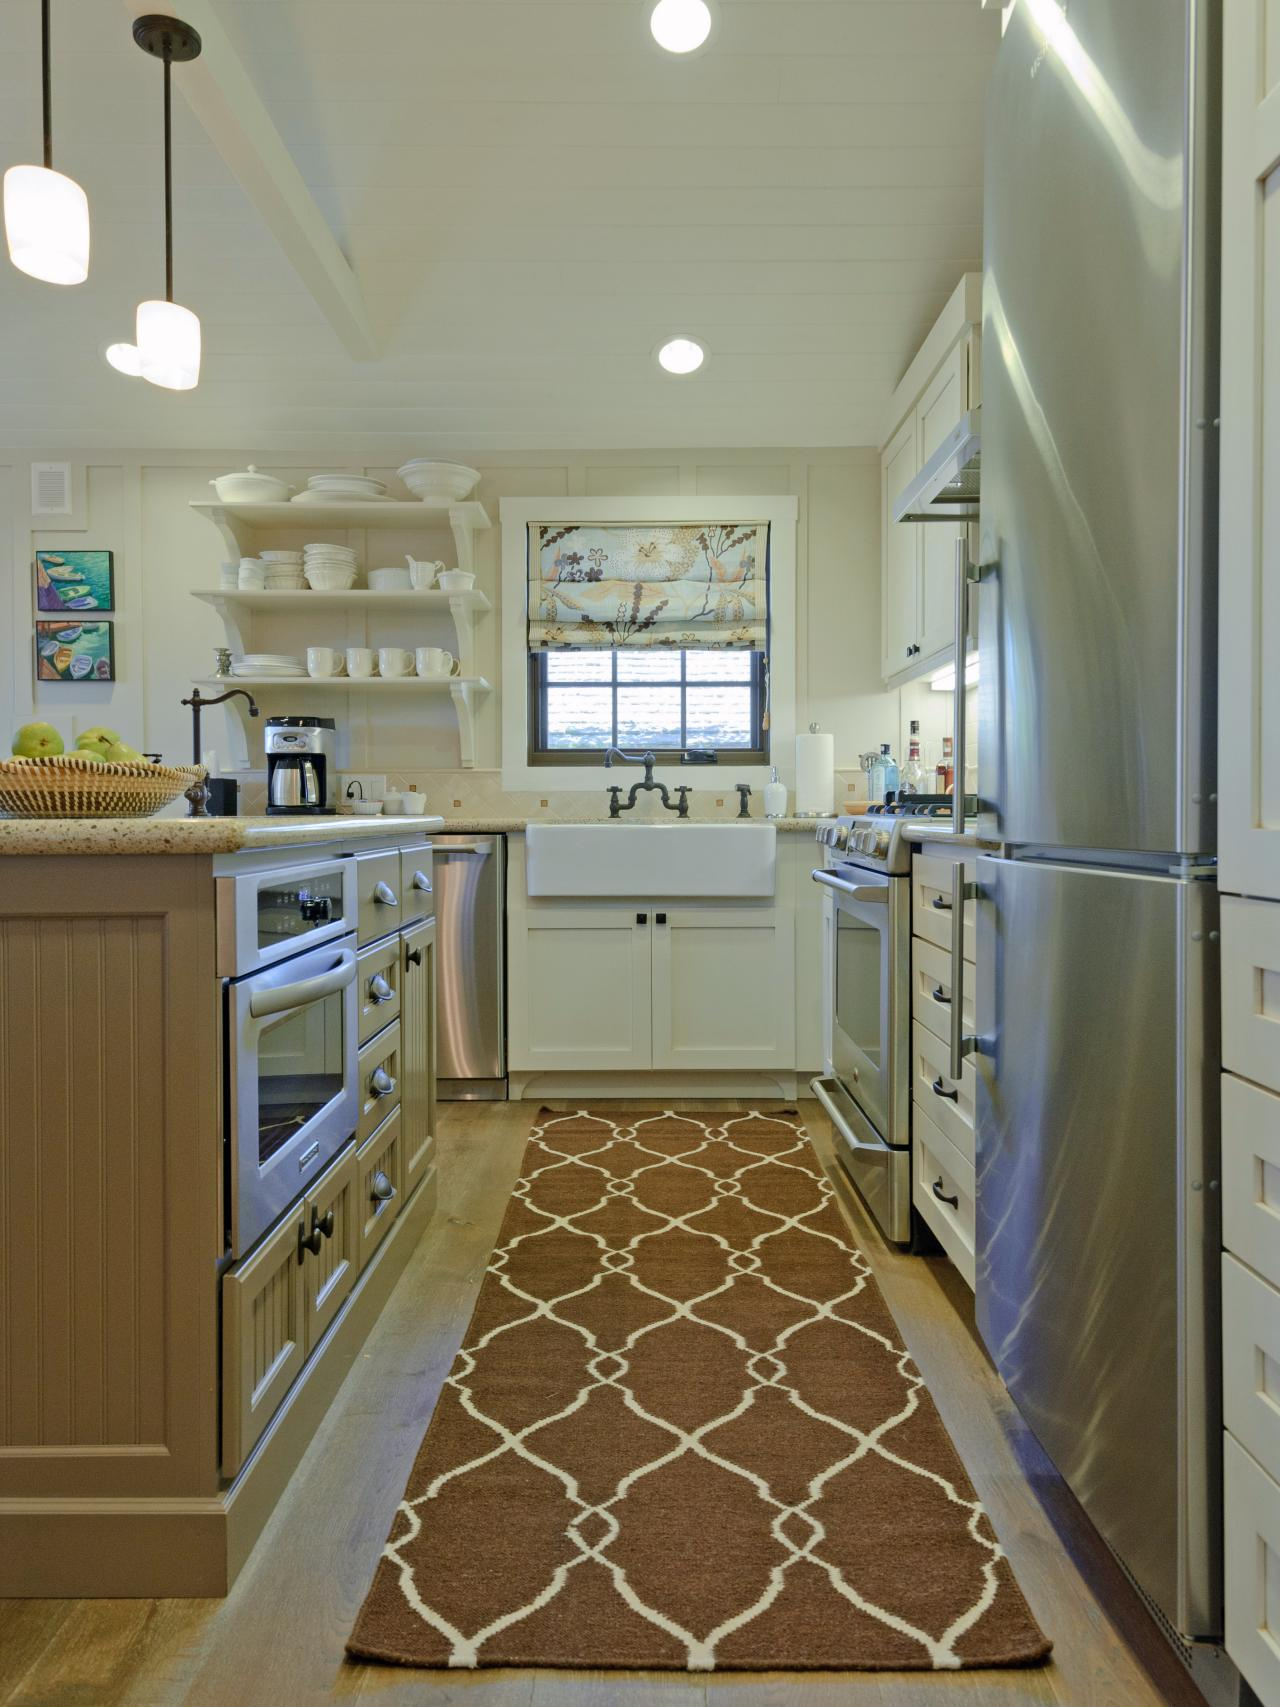 Kitchen sink rugs photo - 3